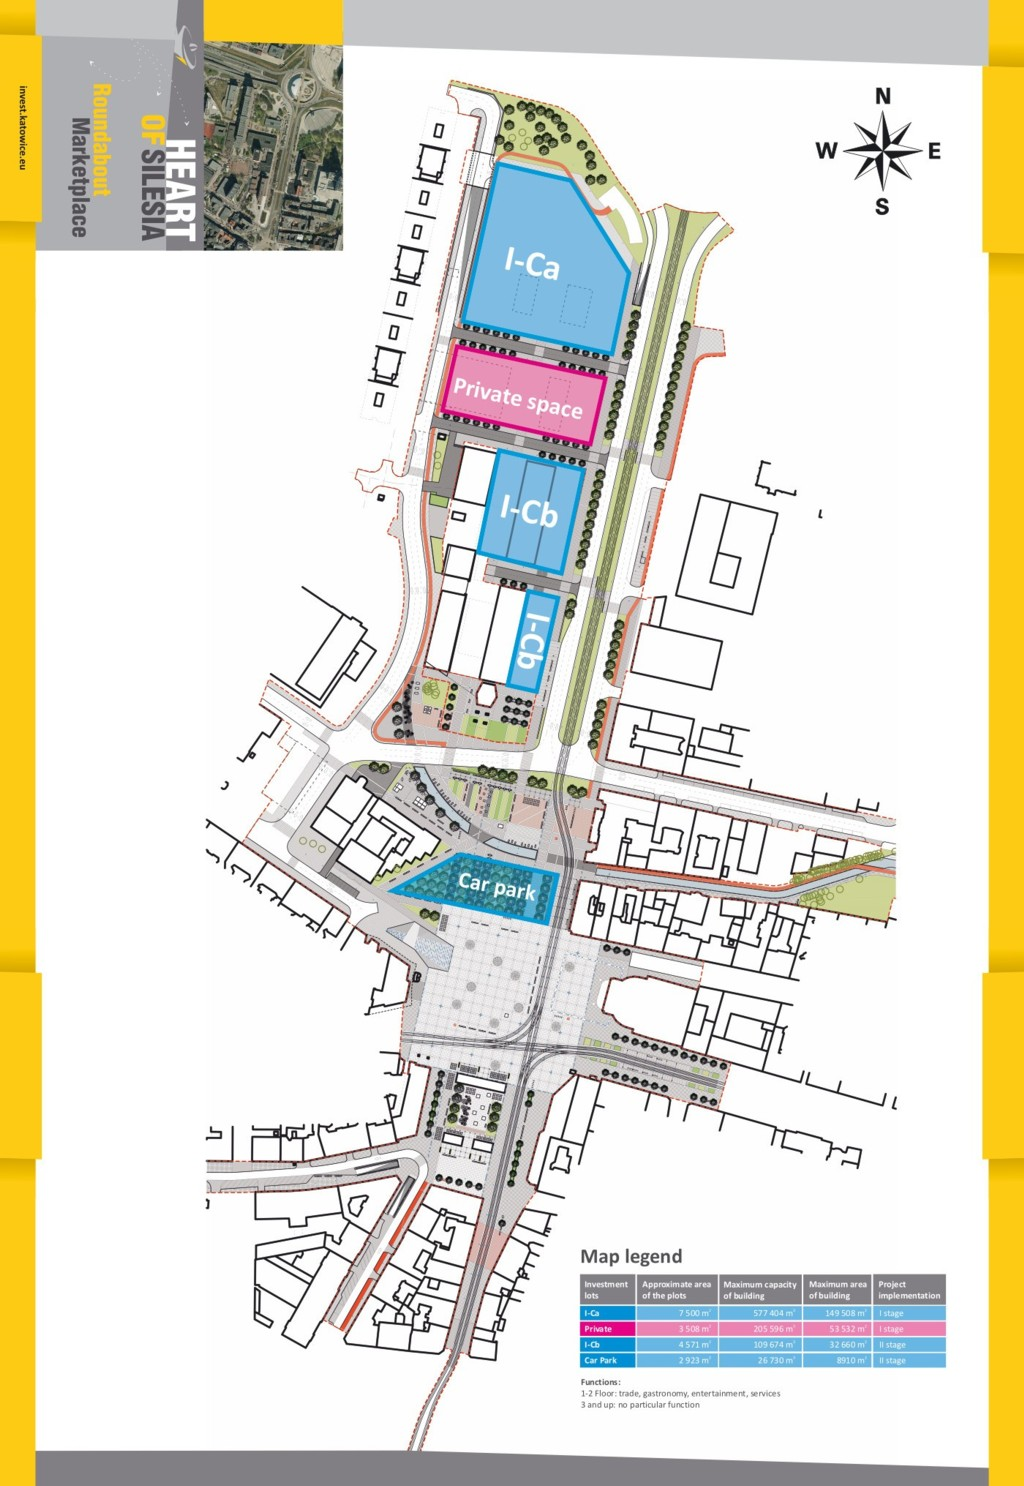 © City Hall of Katowice; map of Market Sqaure - Roundabout area, project of the redevelopment and boarders of the plots